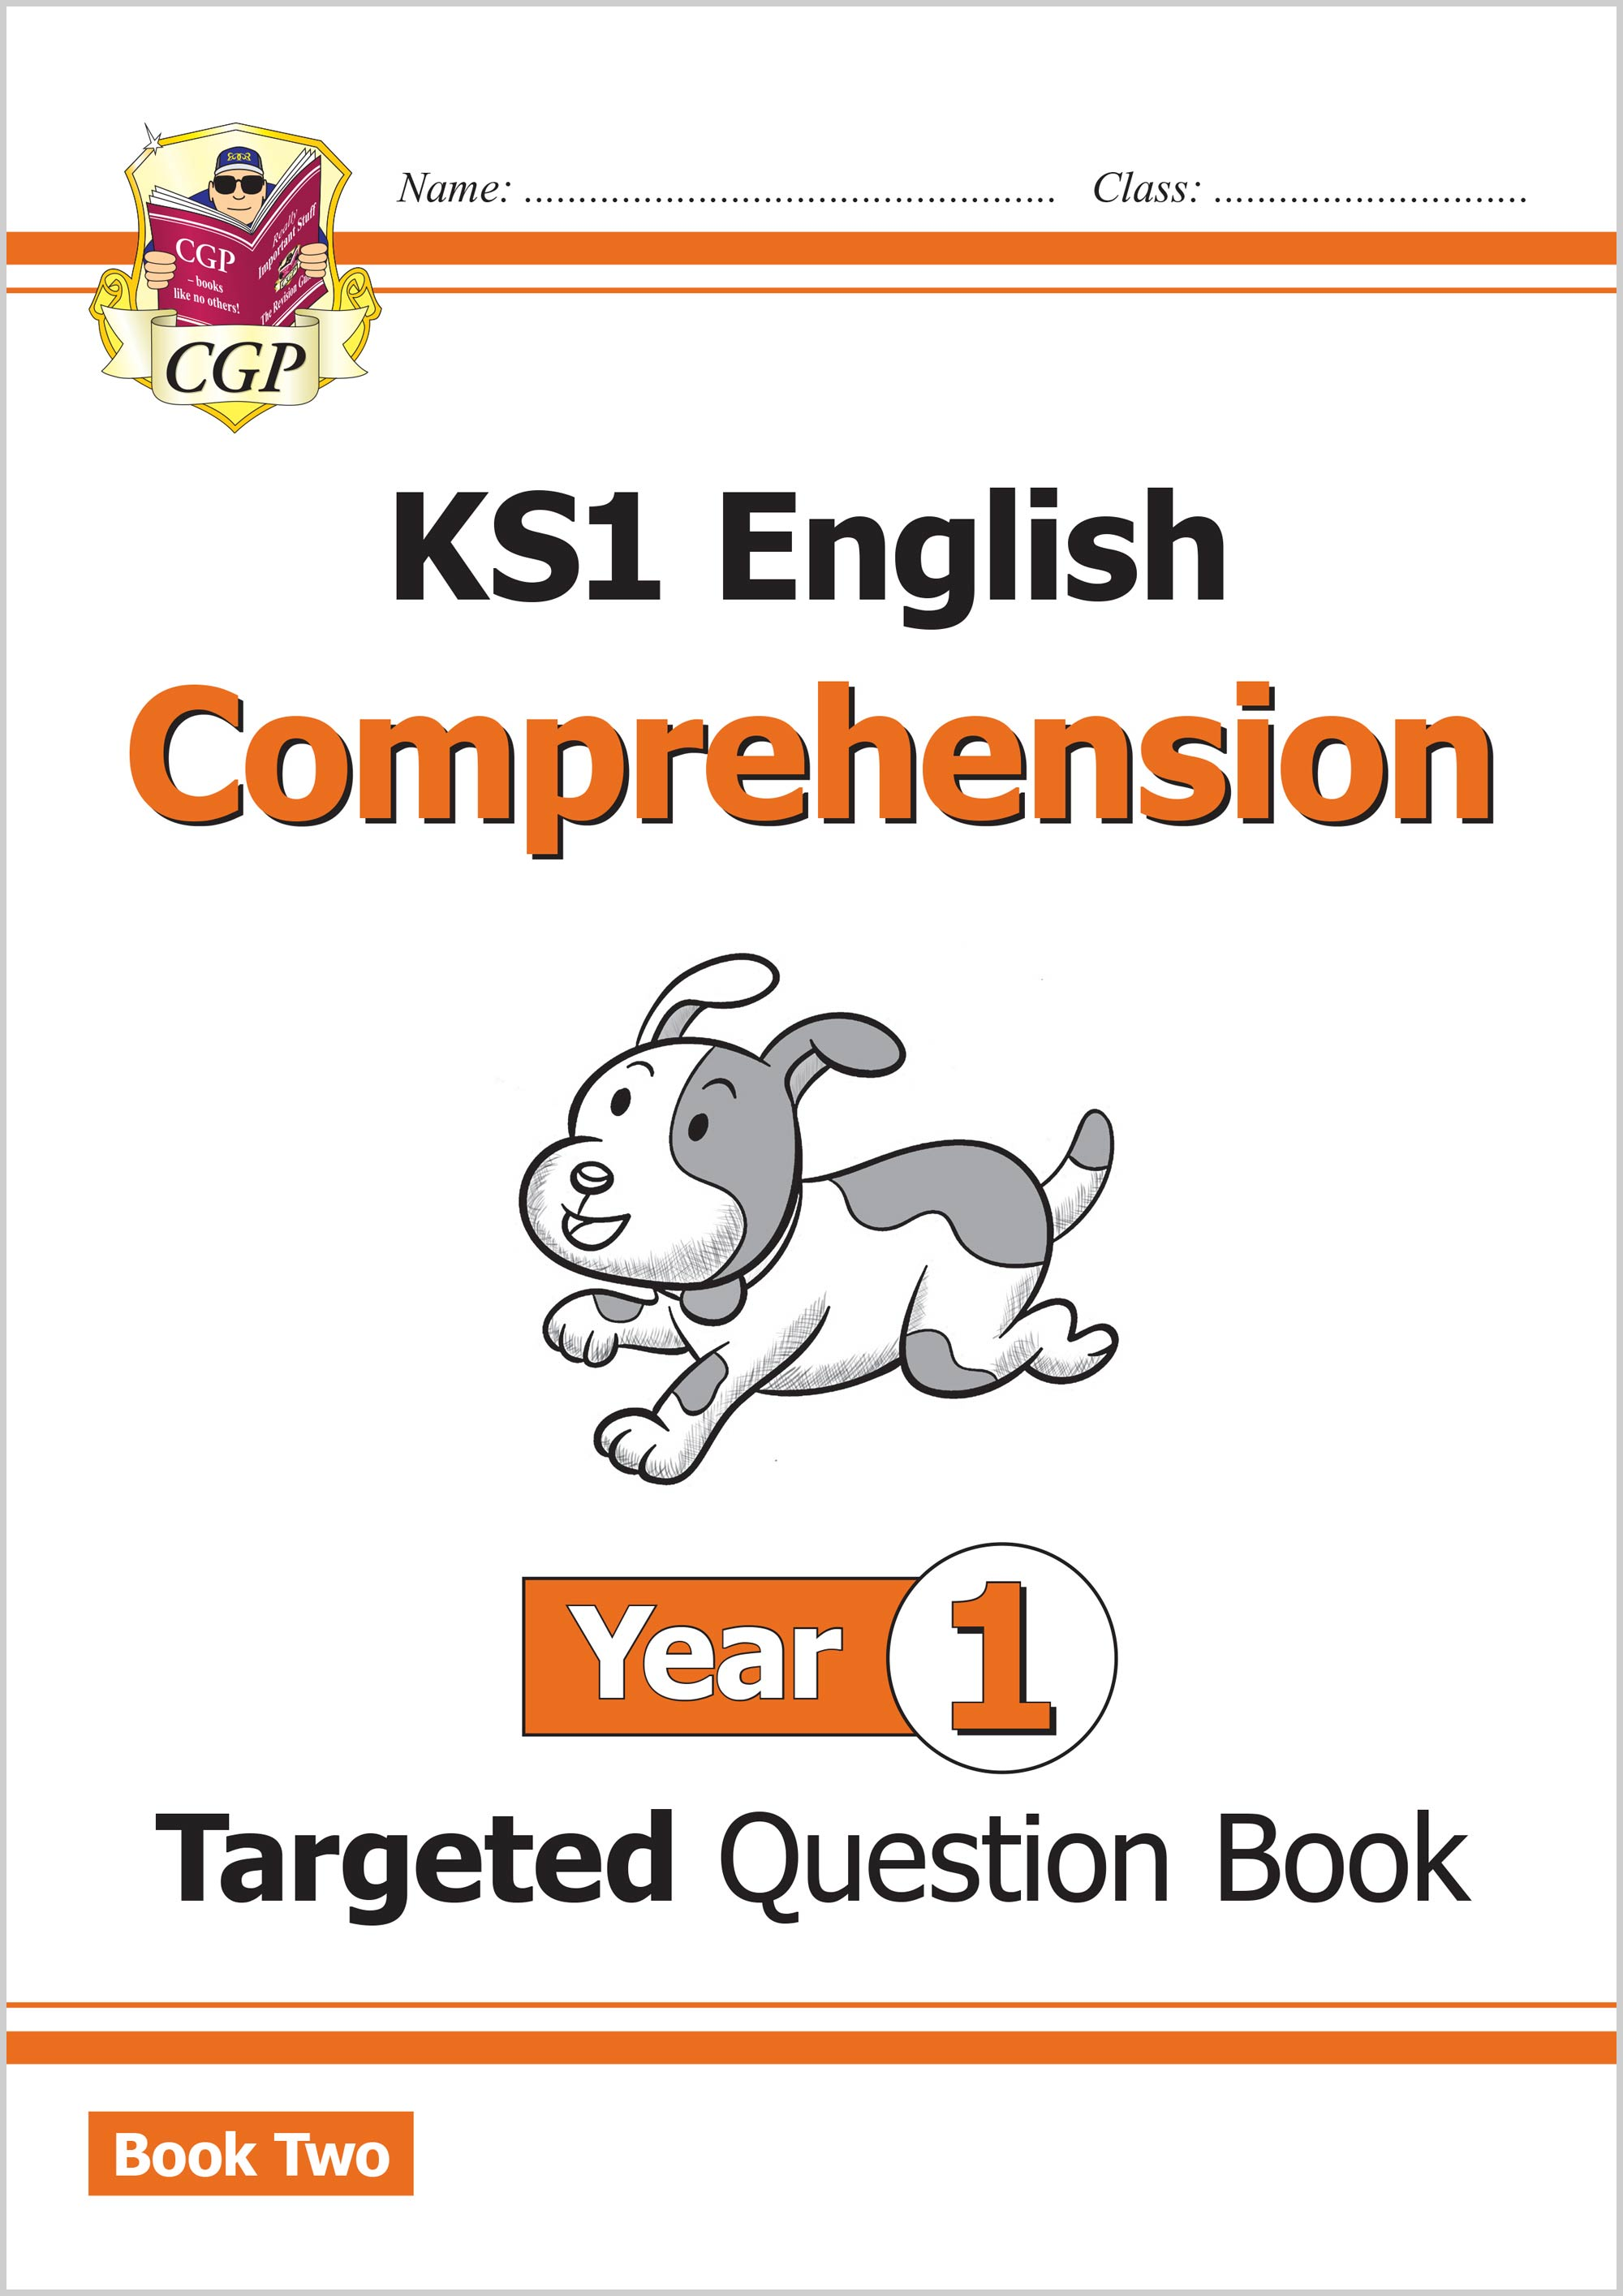 E1CW211 - KS1 English Targeted Question Book: Year 1 Comprehension - Book 2